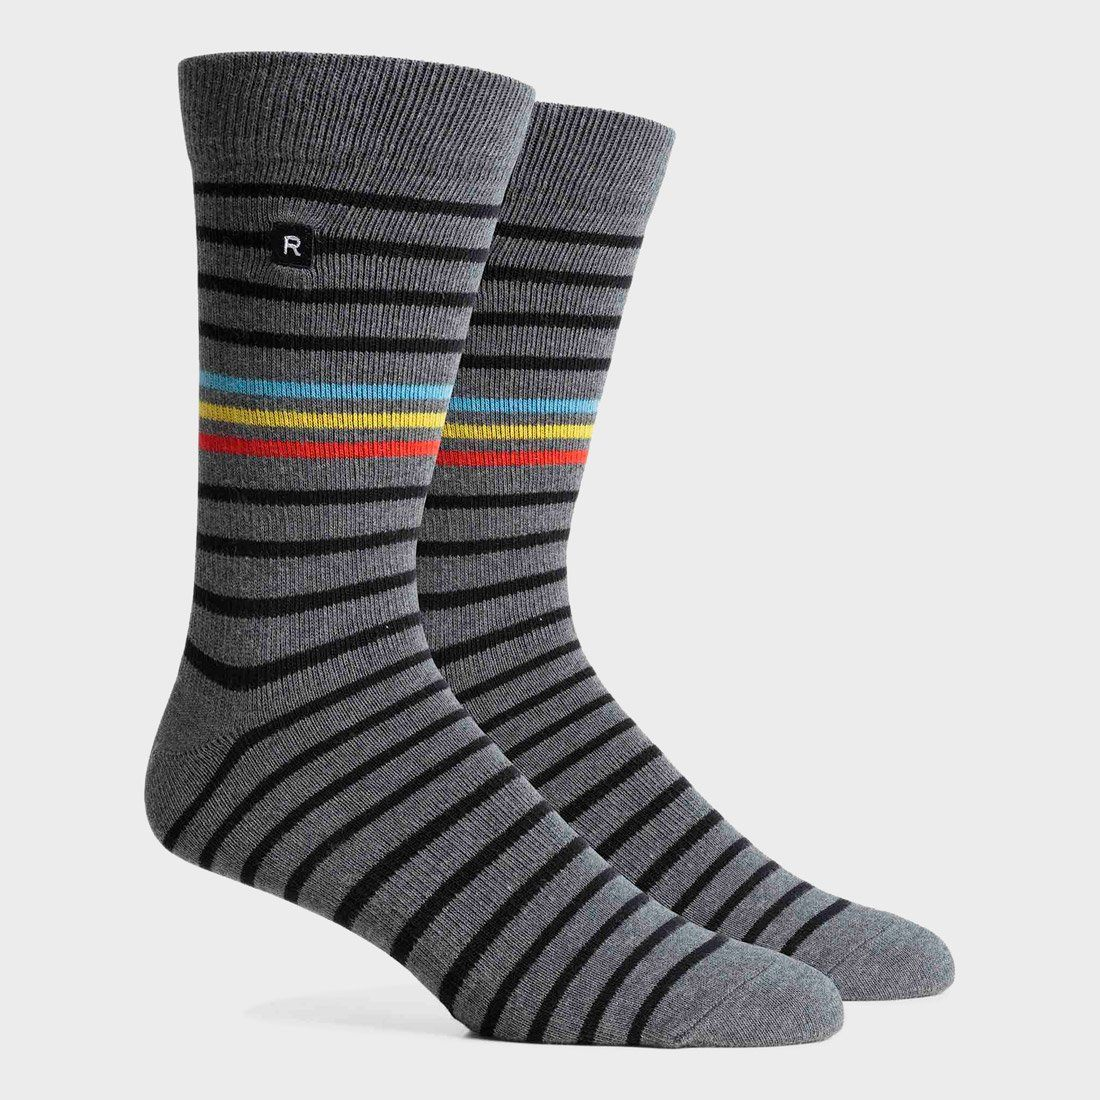 Richer Poorer Striker Crew Sock Charcoal/ Black